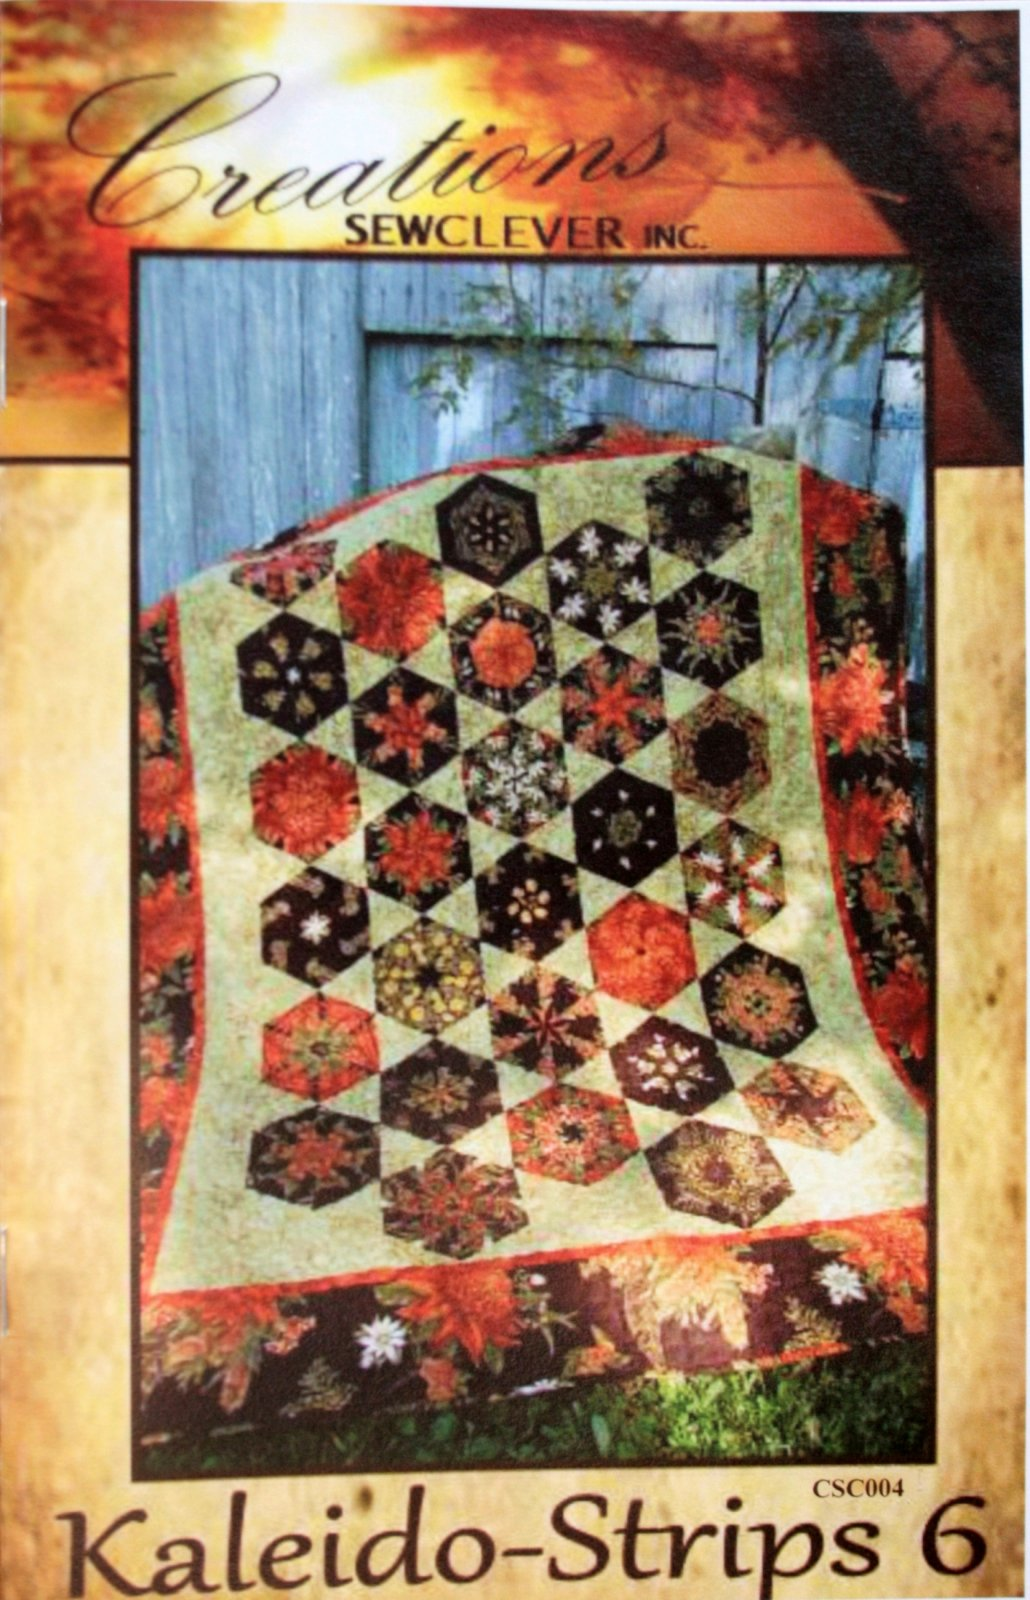 Creations Sewclever inc. Kaleido-strips 6